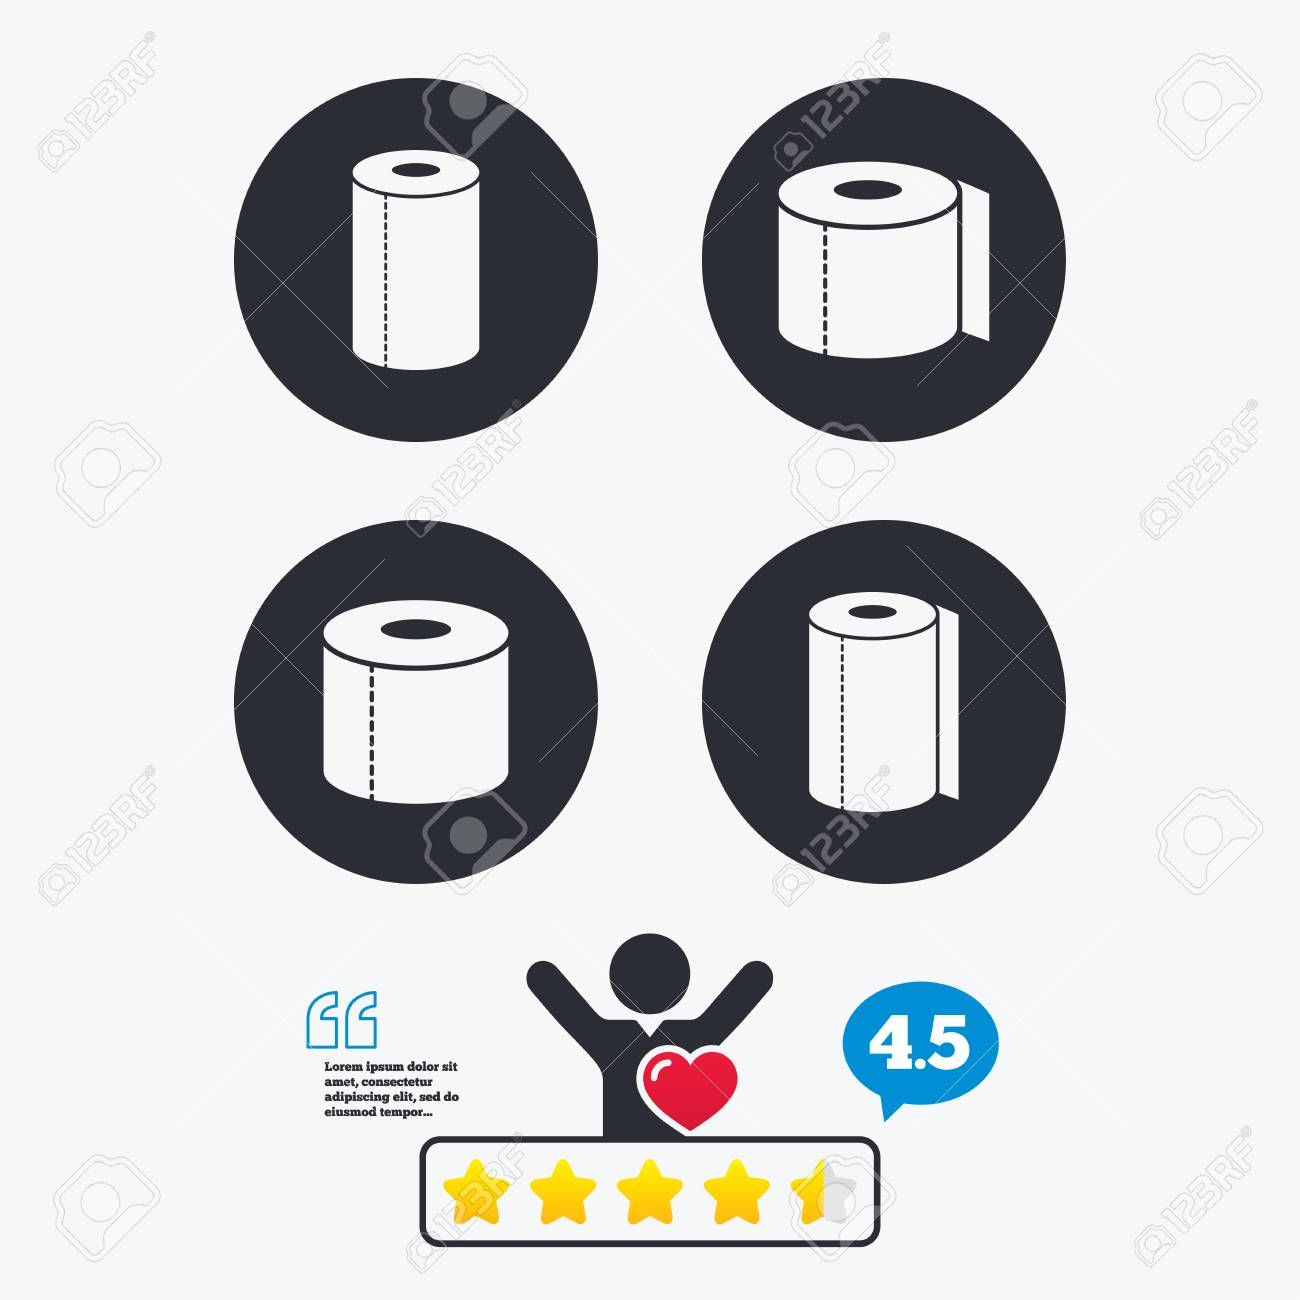 Toilet paper icons kitchen roll towel symbols wc paper signs kitchen roll towel symbols wc paper signs star vote ranking buycottarizona Choice Image